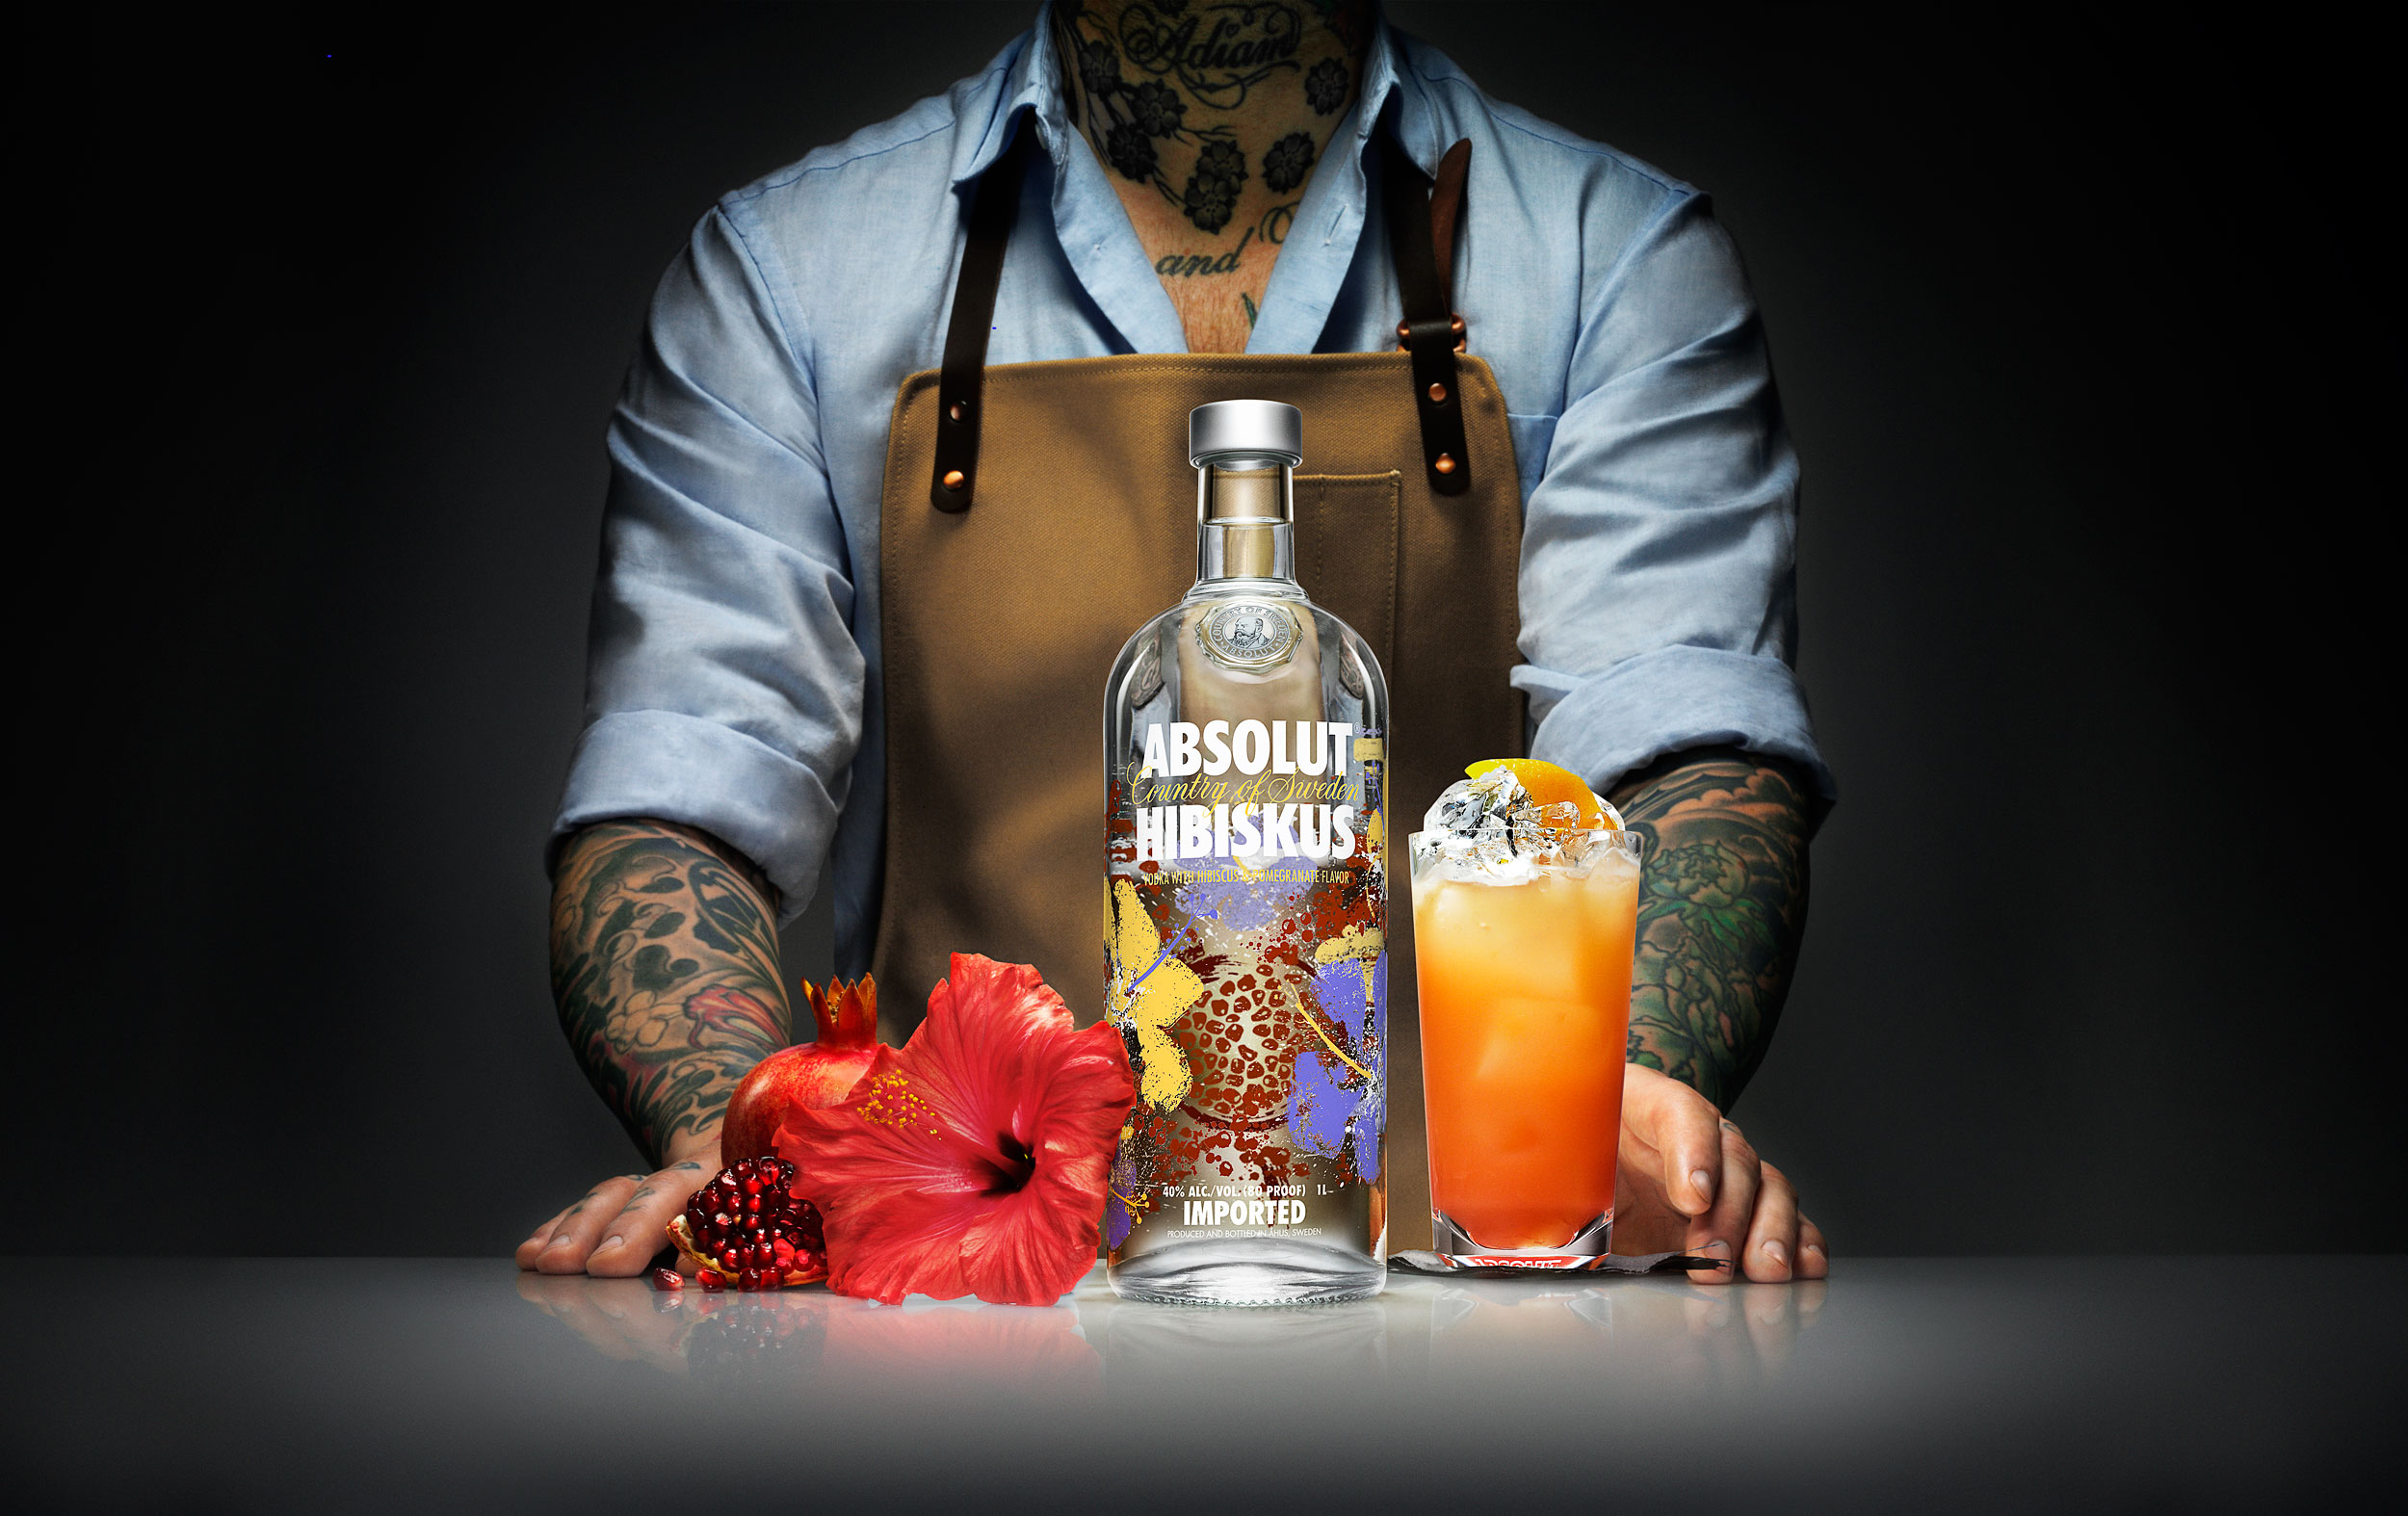 jensmortensen-absolut-vodka-0b137e9a